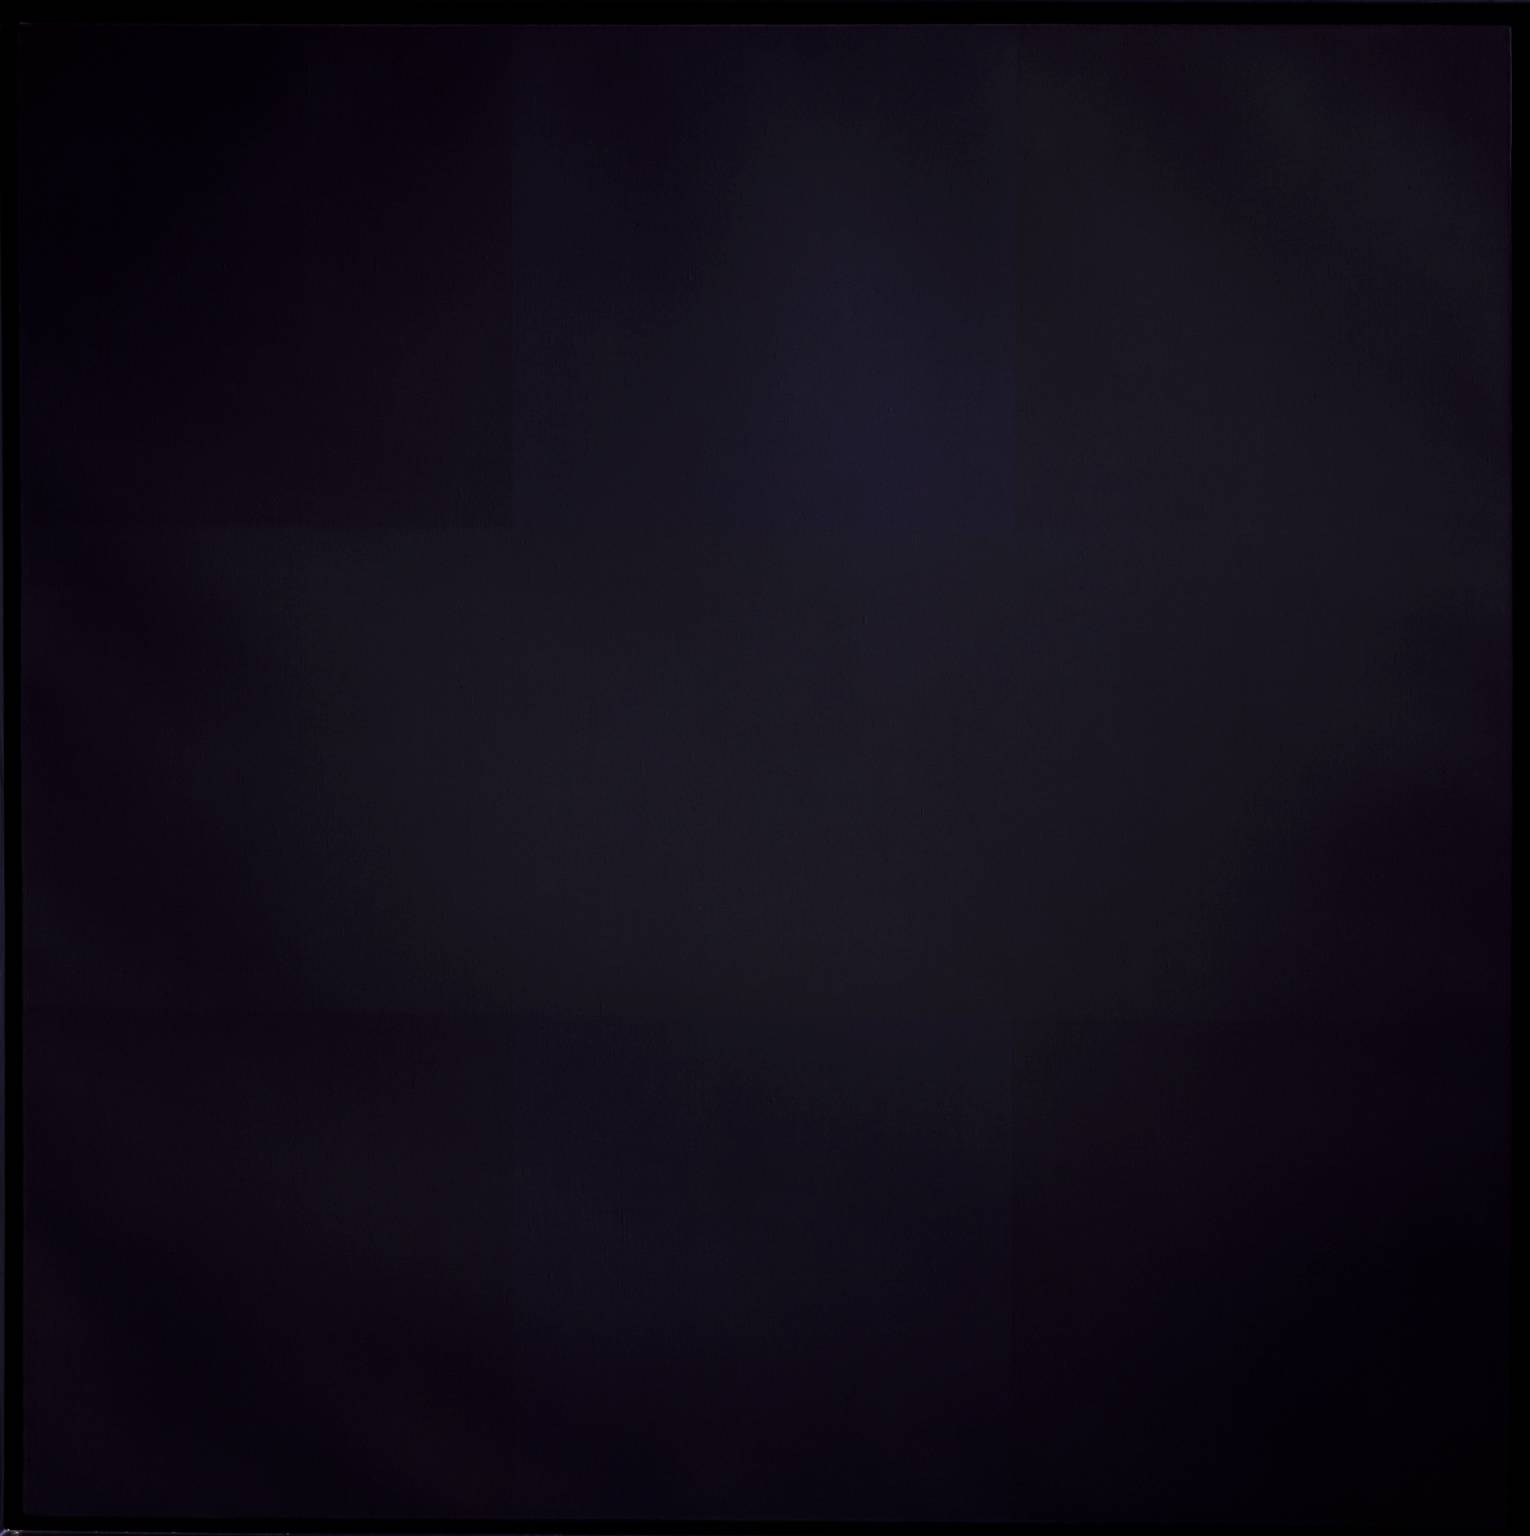 Abstract Painting No. 5 1962 by Ad Reinhardt 1913-1967